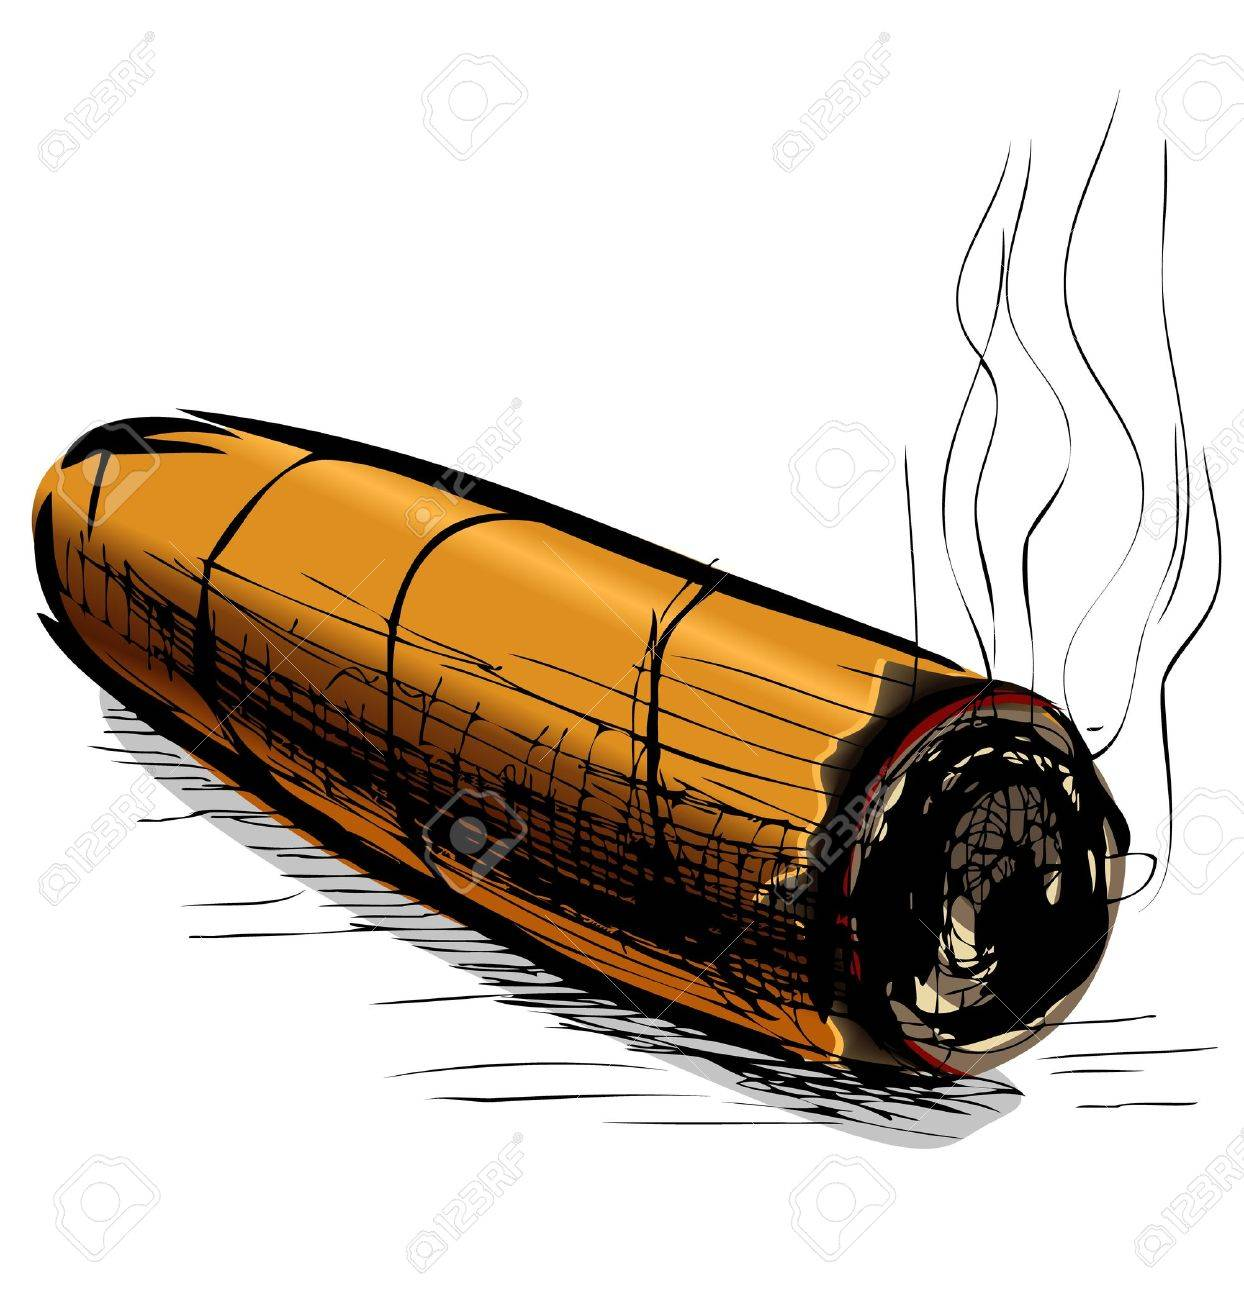 Lighting cigar sketch vector illustration Stock Vector - 19111382